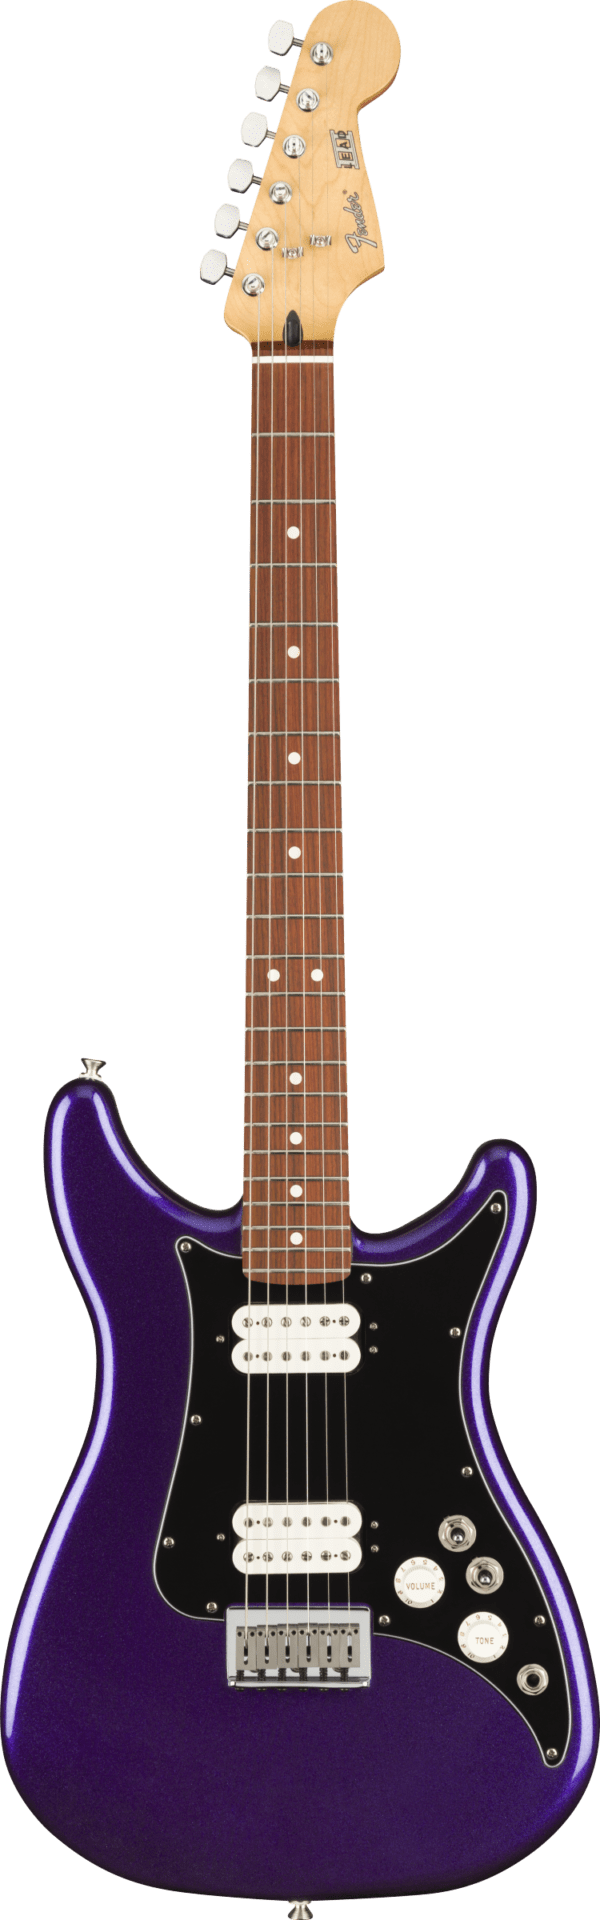 FENDER LEAD III PURPLE